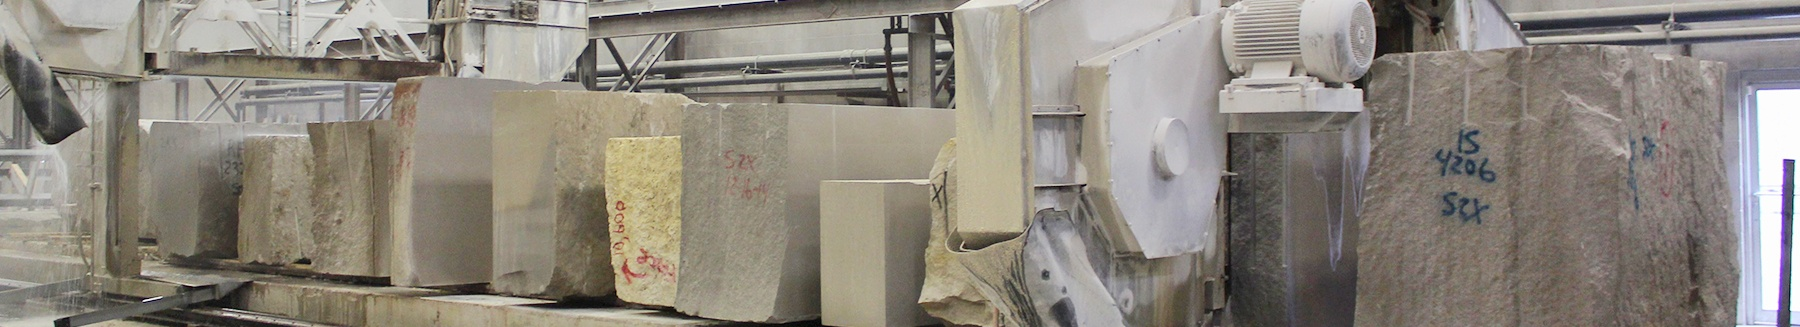 about-limestone-header.jpg